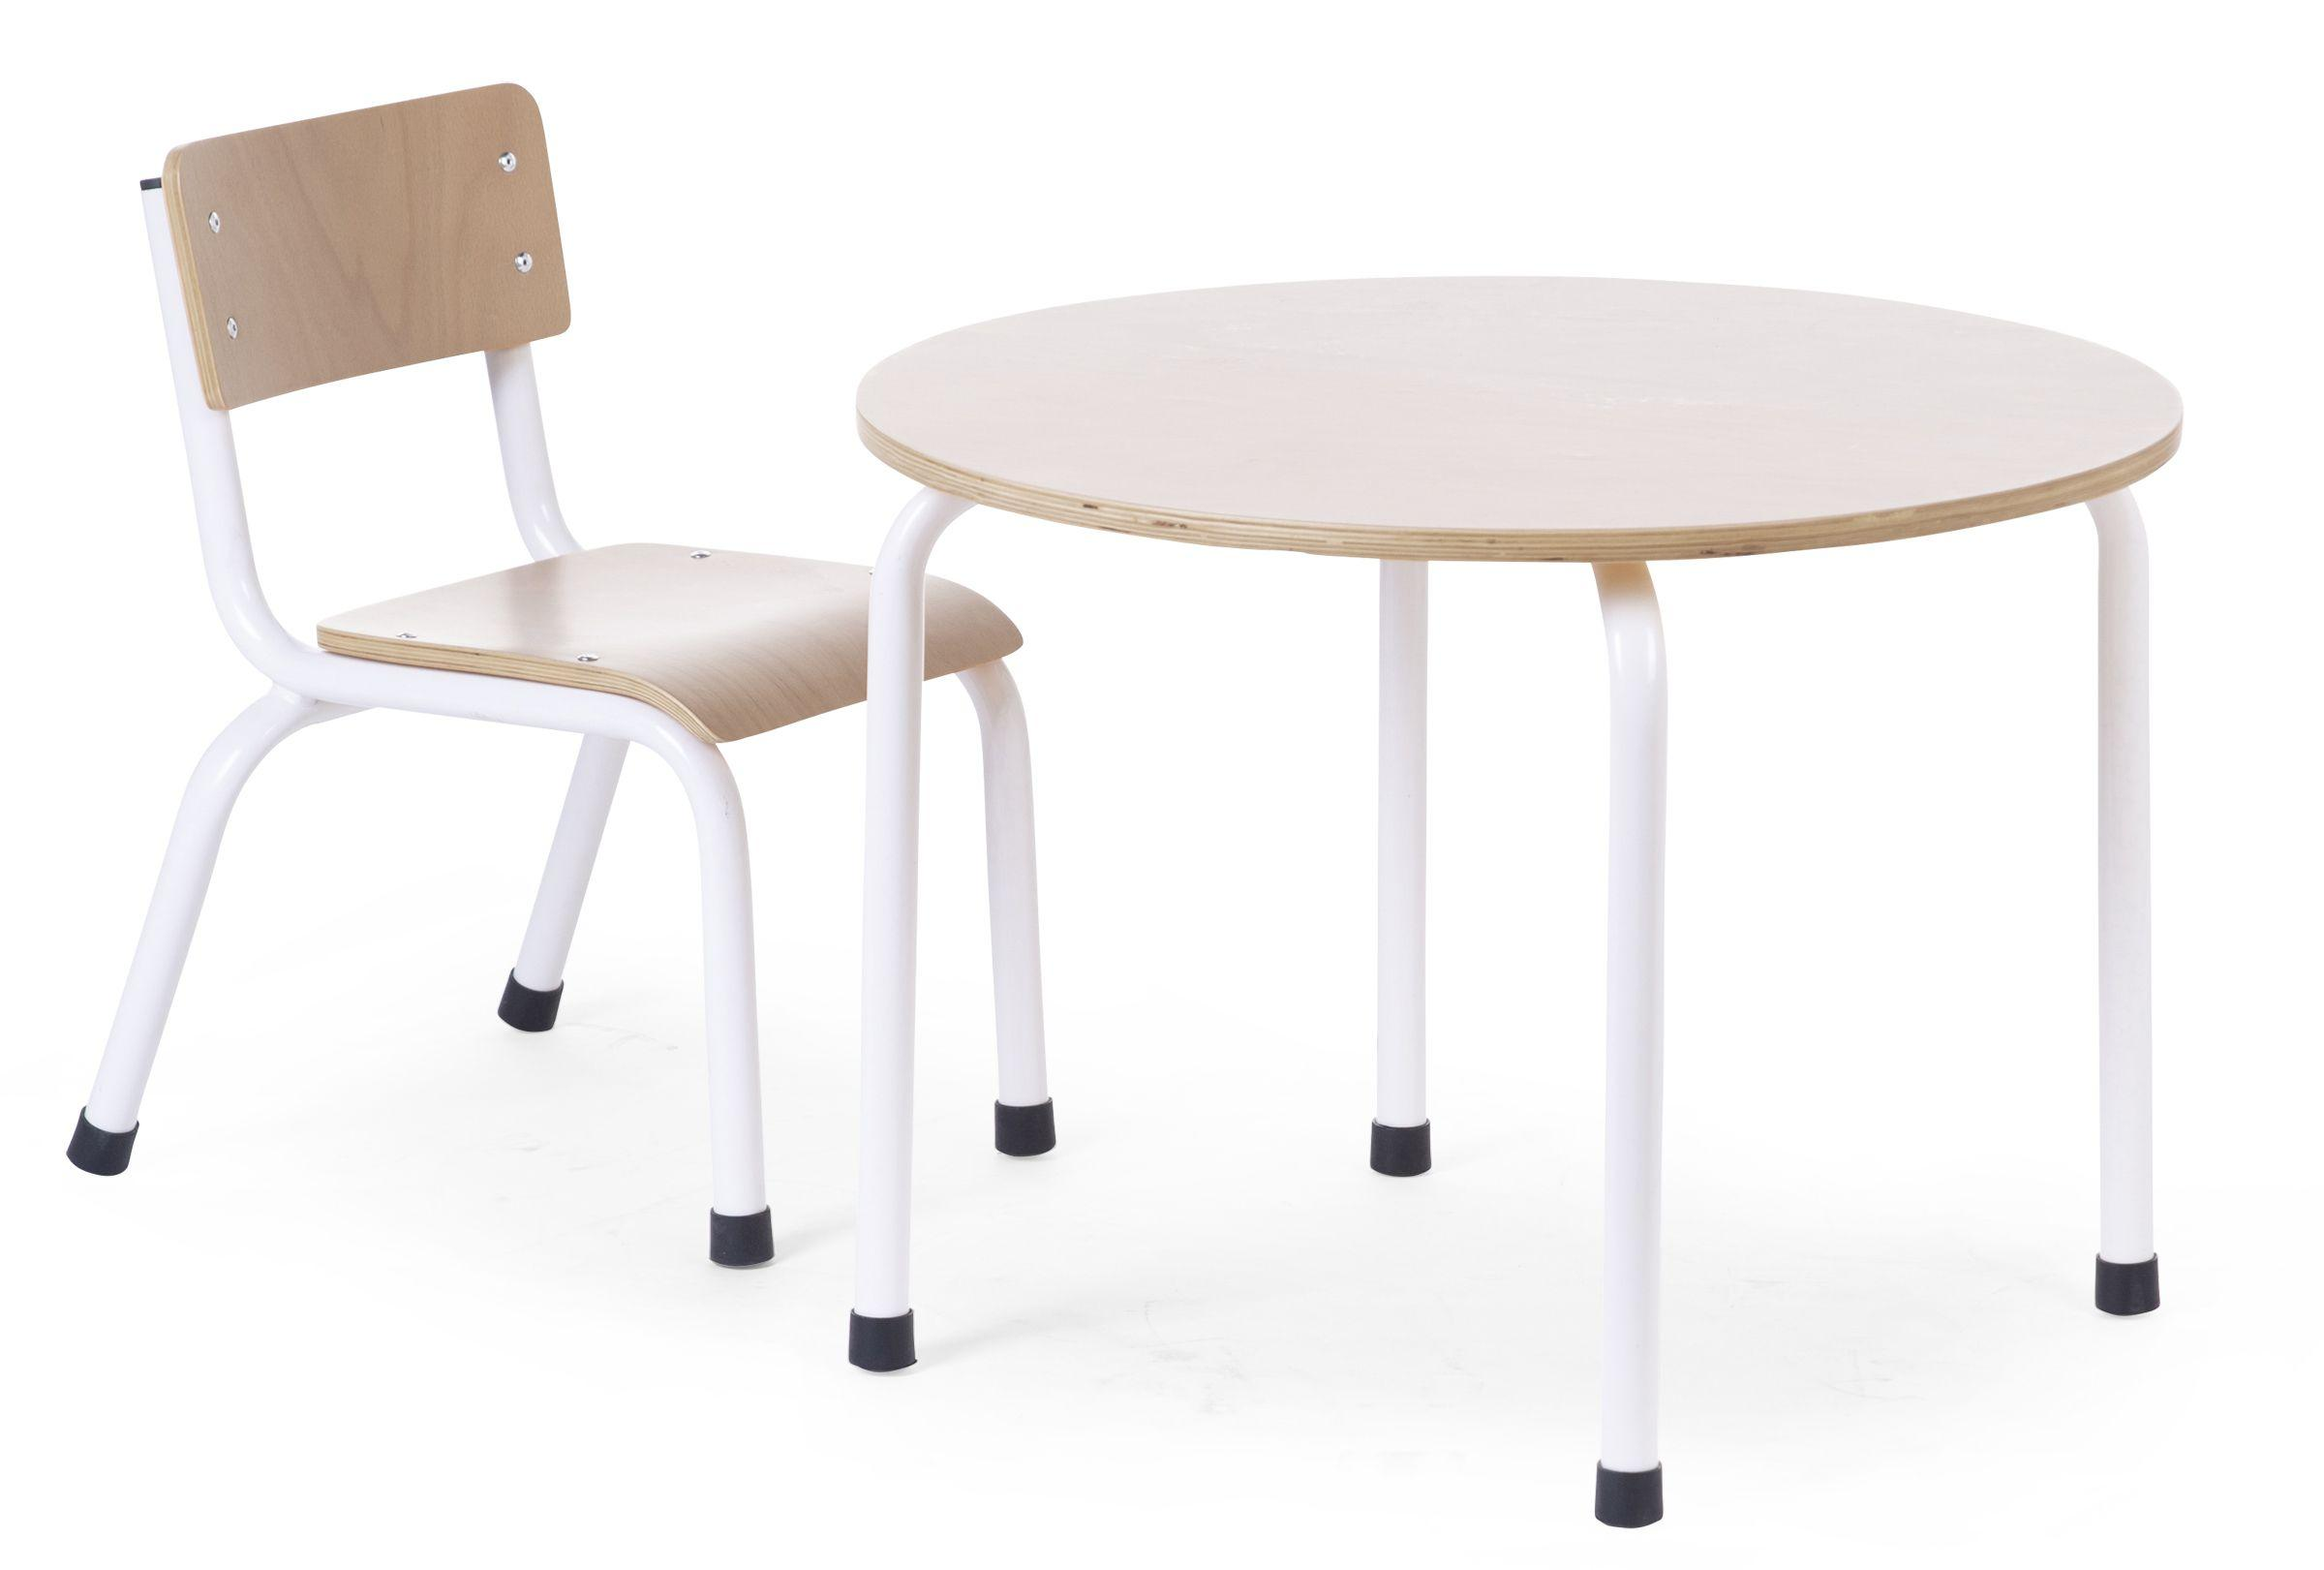 Childhome Small Metal Wood Round Table Natural White Nordbaby